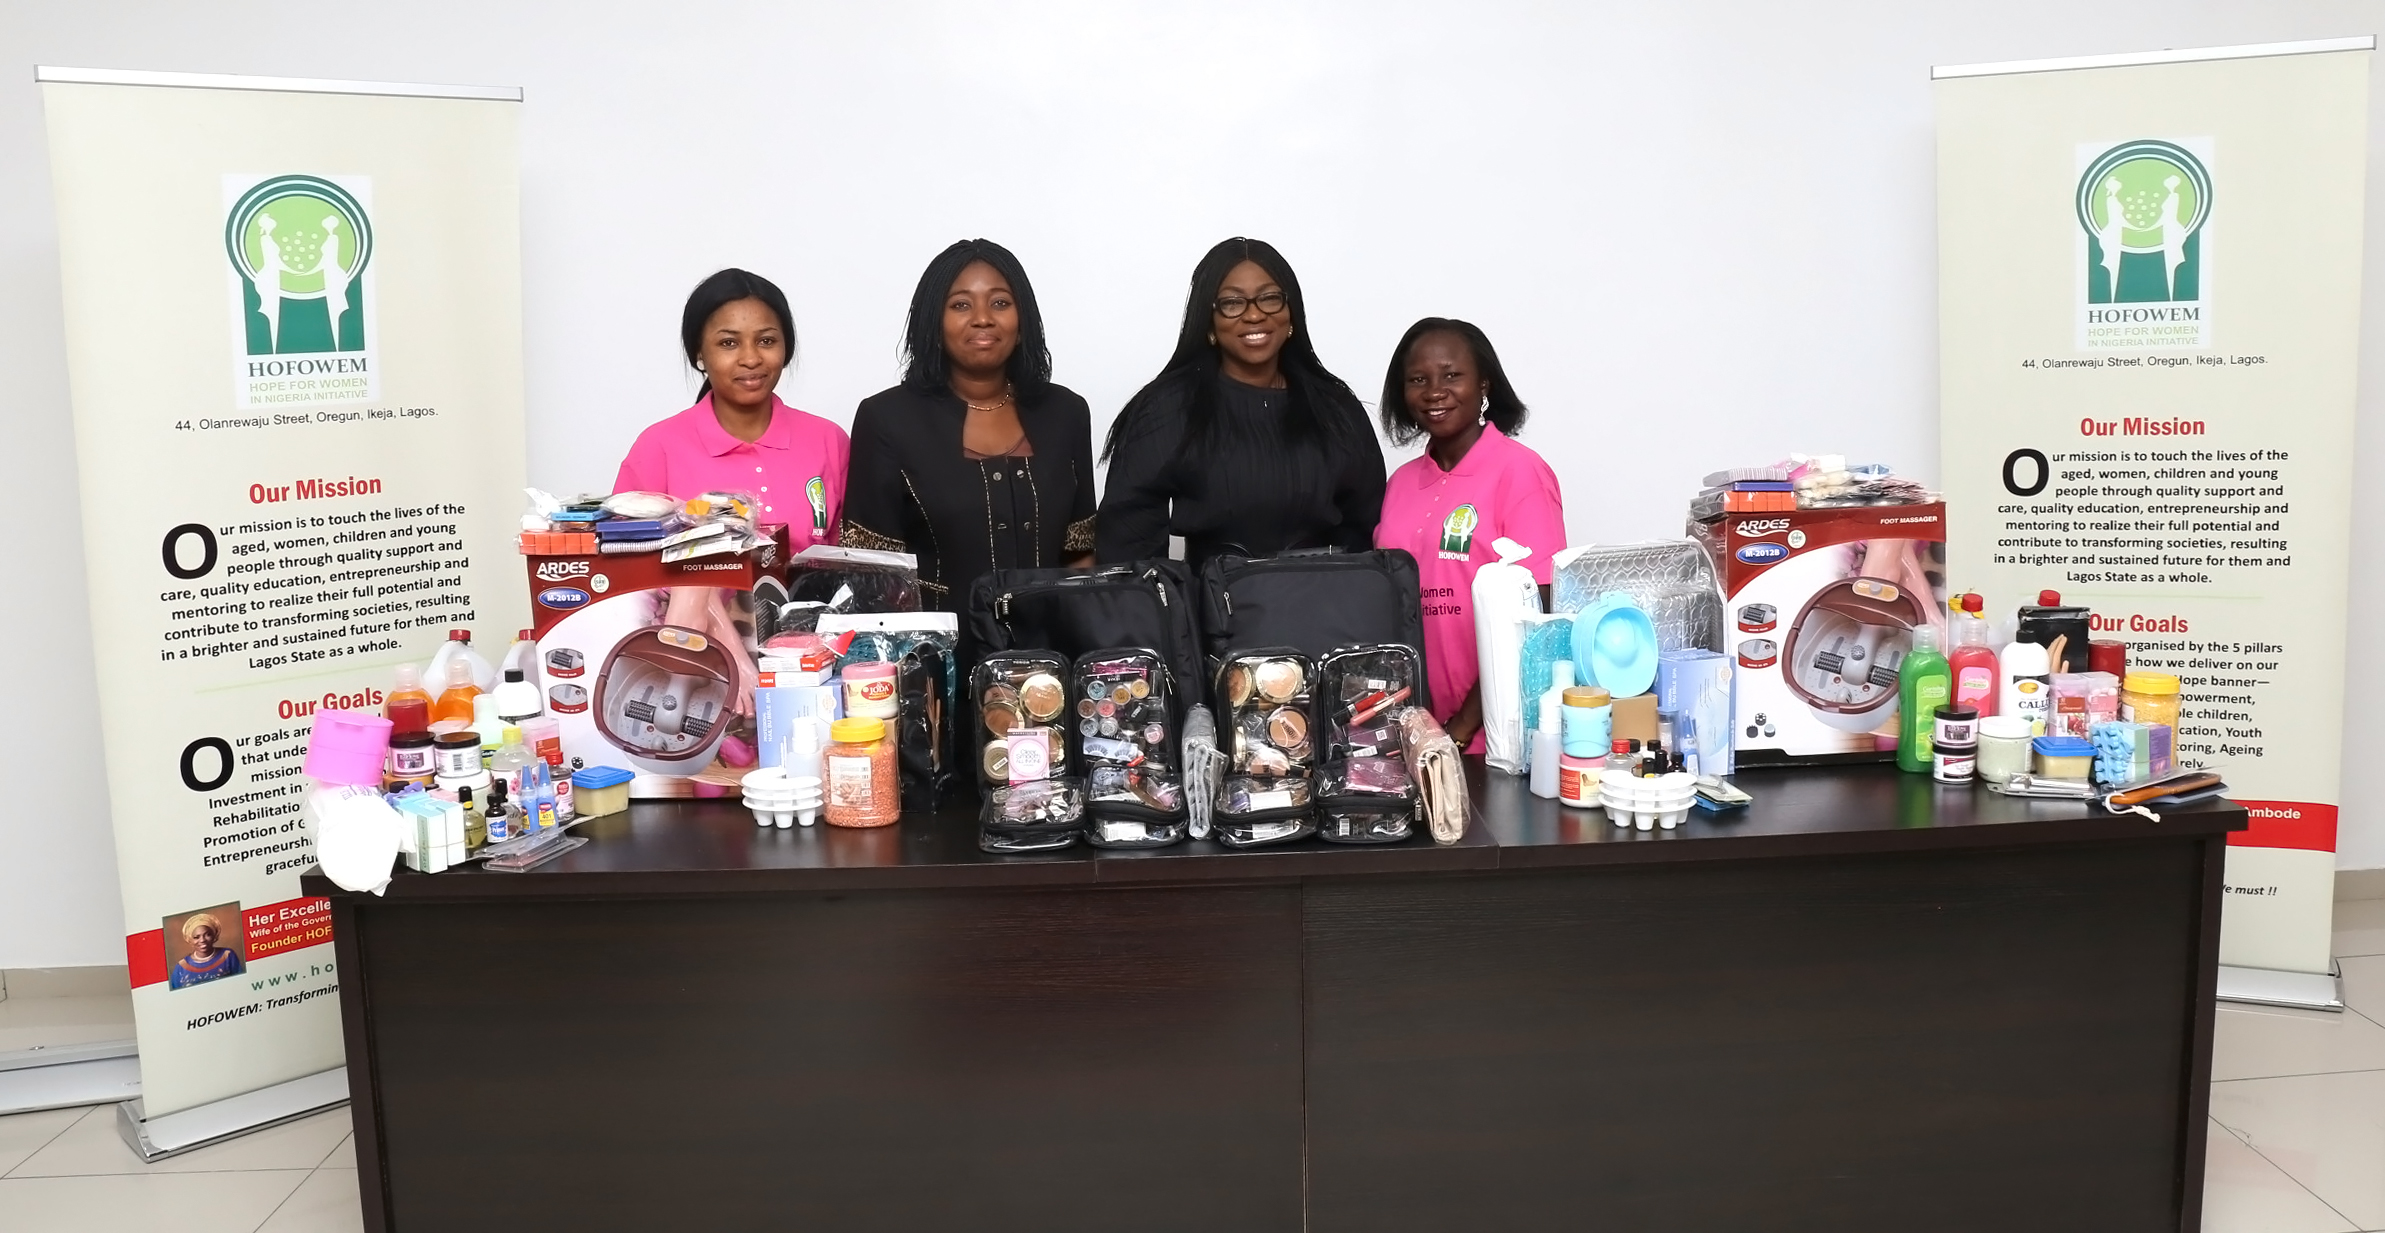 Our Founder flanked by HOFOWEM CEO Mrs. Oyefunke Olayinka during the presentation of the work kits.